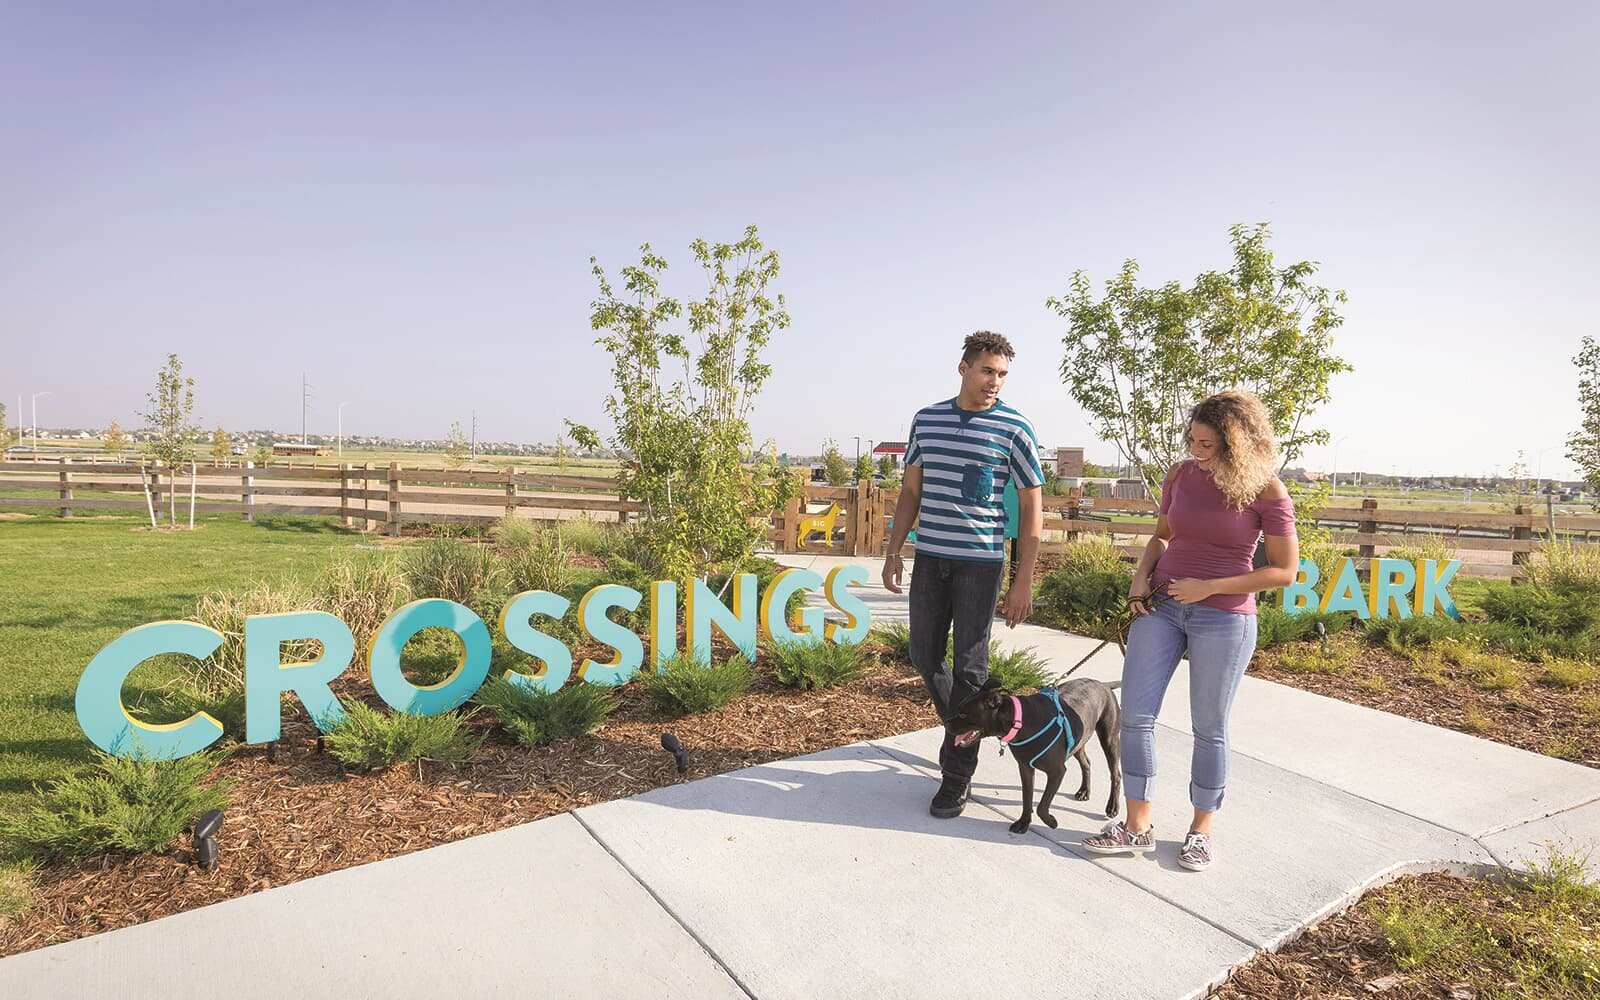 Lifestyle Crossings Bark Couple Brighton Crossings Denver Colorado